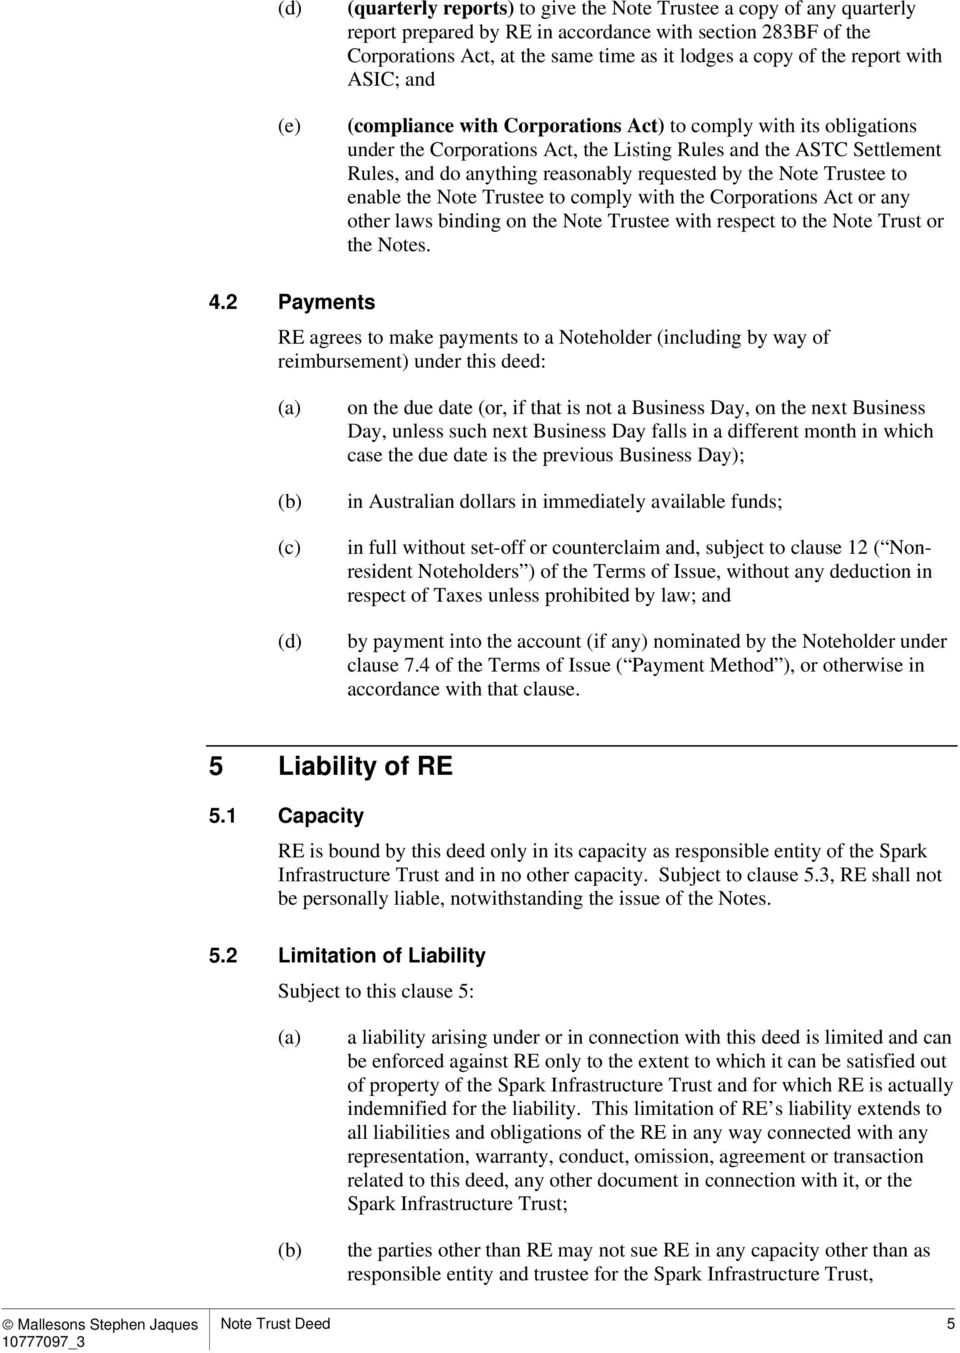 requested by the Note Trustee to enable the Note Trustee to comply with the Corporations Act or any other laws binding on the Note Trustee with respect to the Note Trust or the Notes. 4.